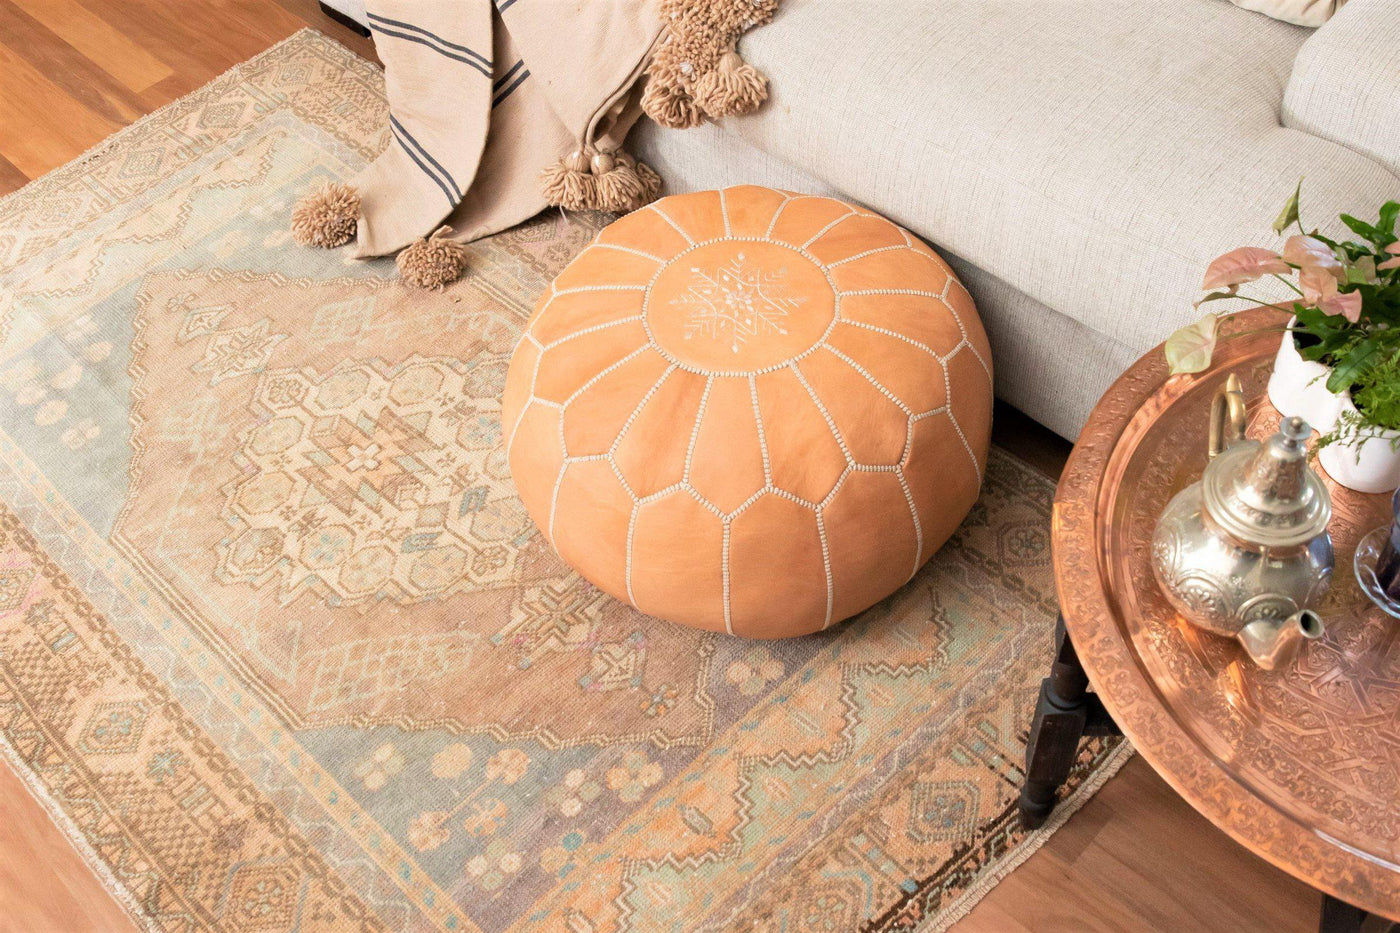 a-little-morocco-turkish-rug-azra-1200x1160mm-product-shot